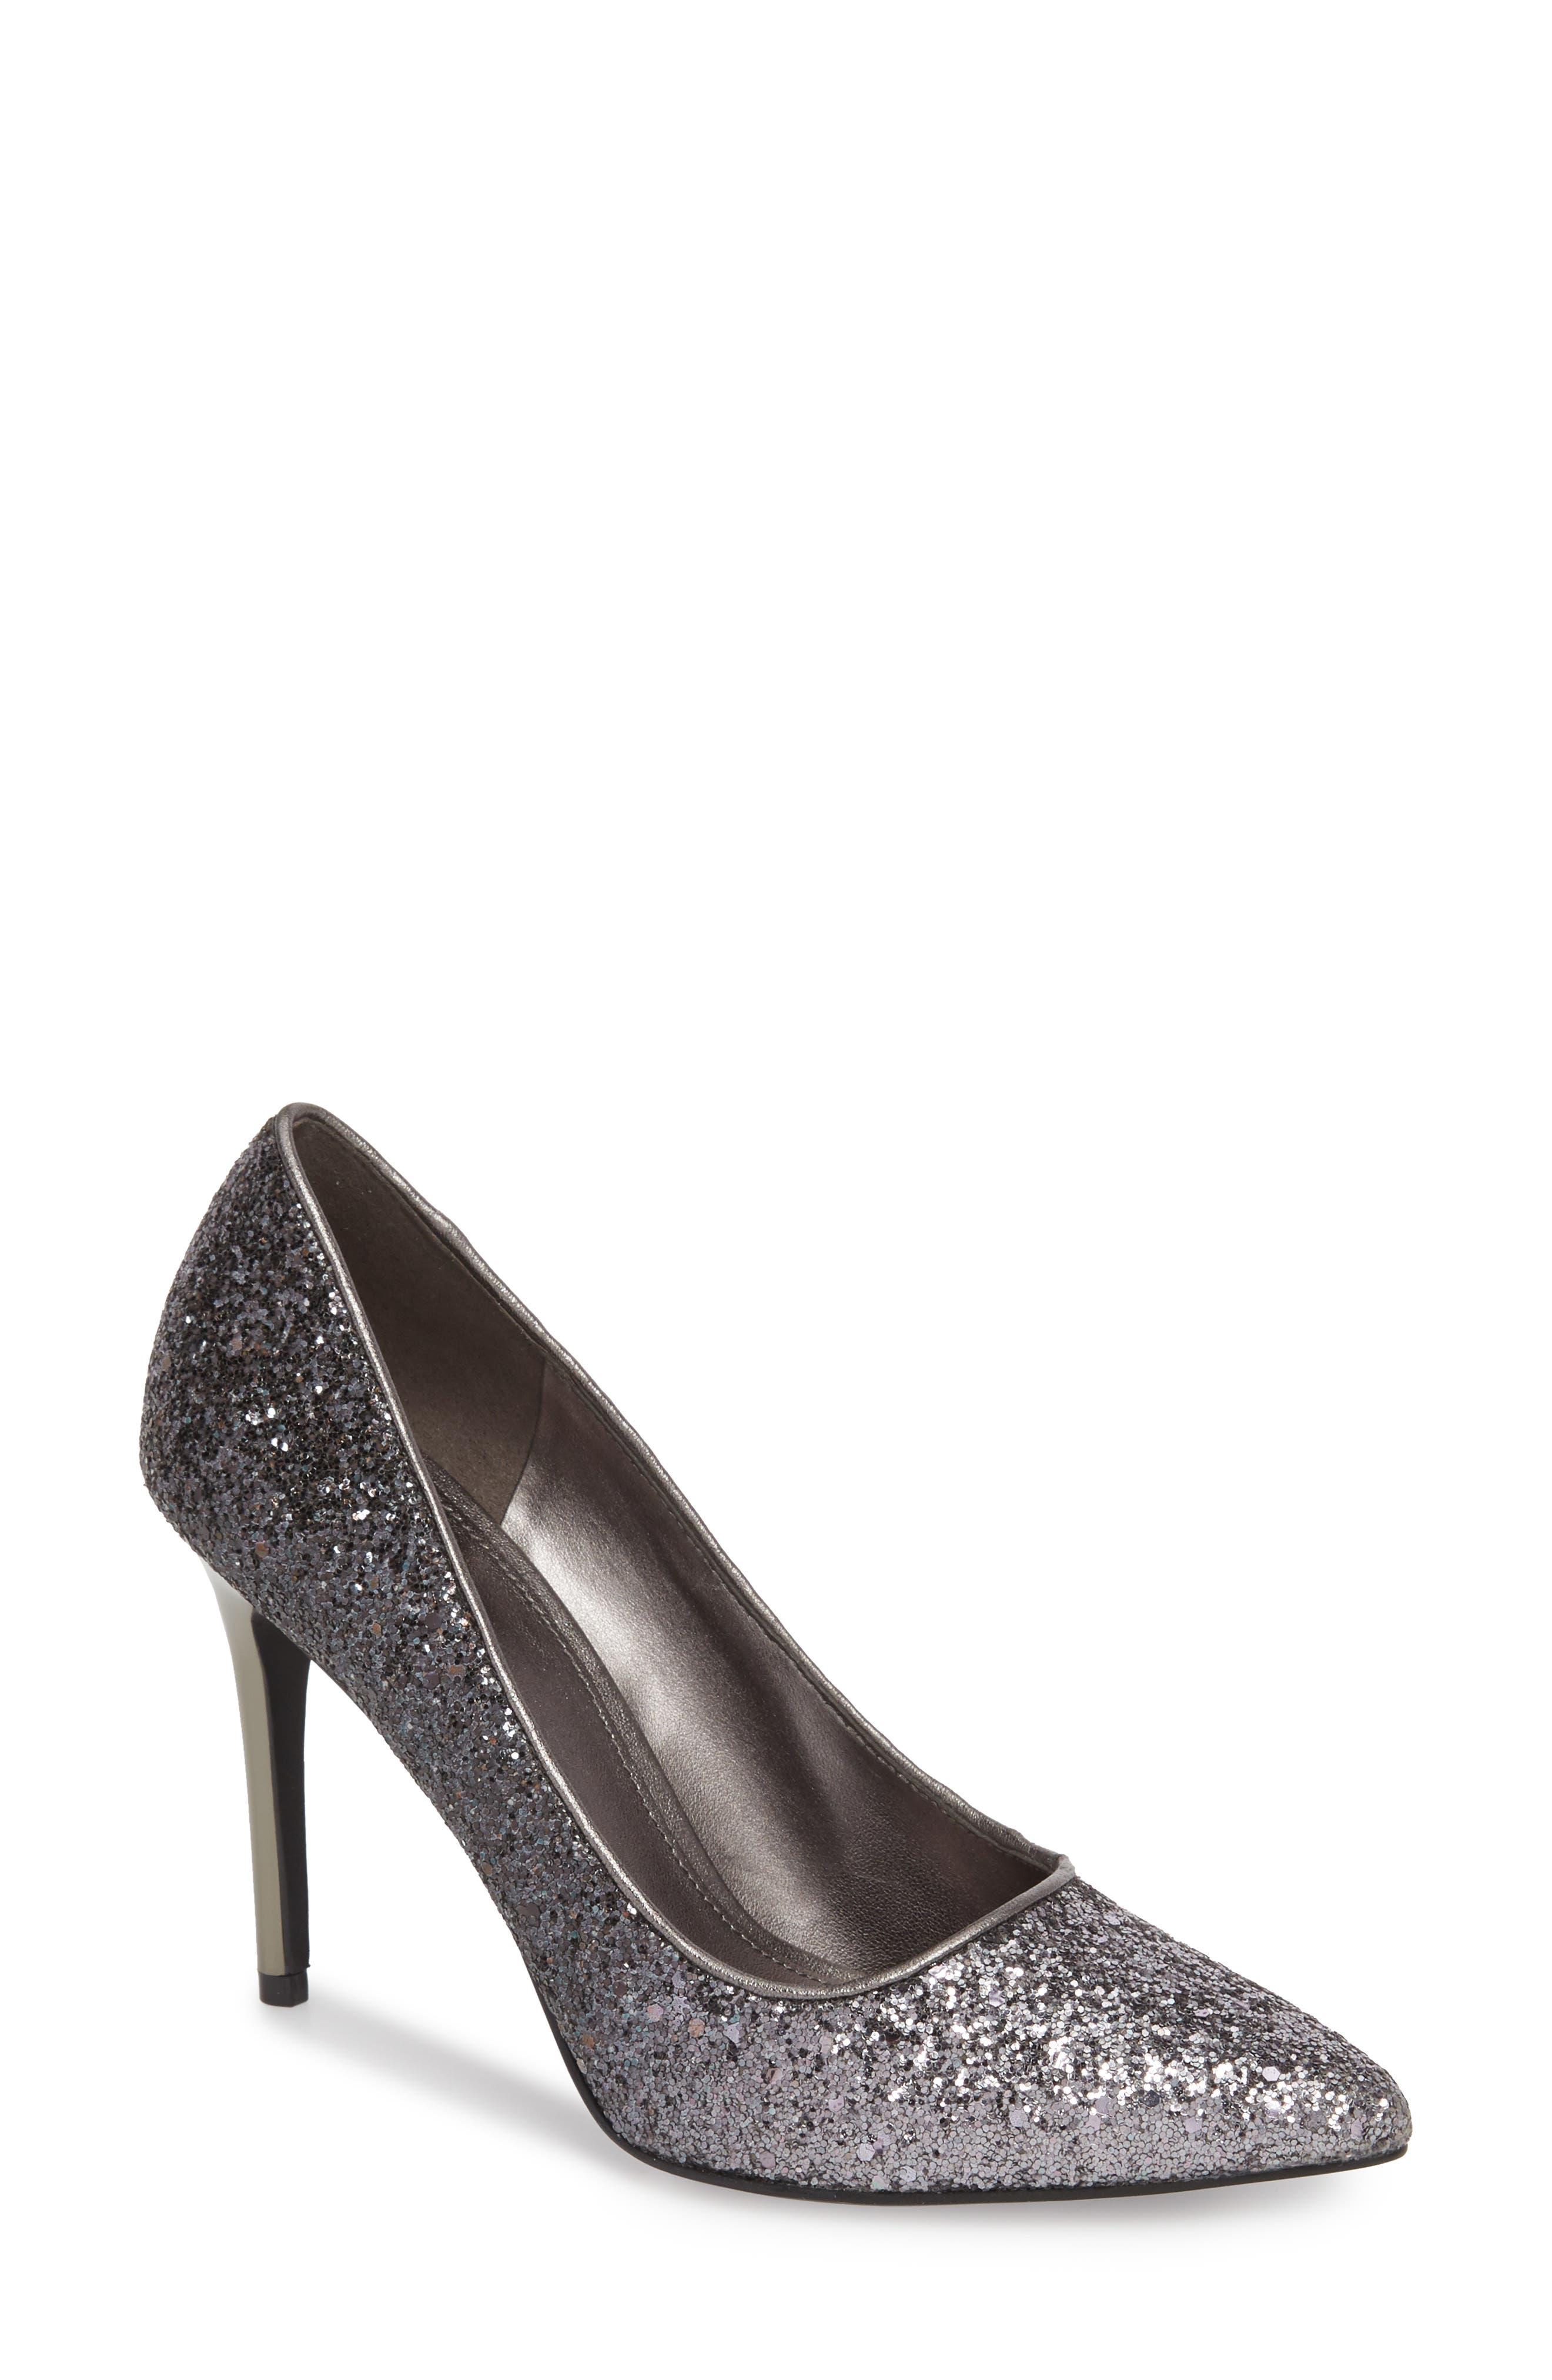 Claire Pointy Toe Pump,                             Main thumbnail 1, color,                             GUNMETAL GLITTER FABRIC